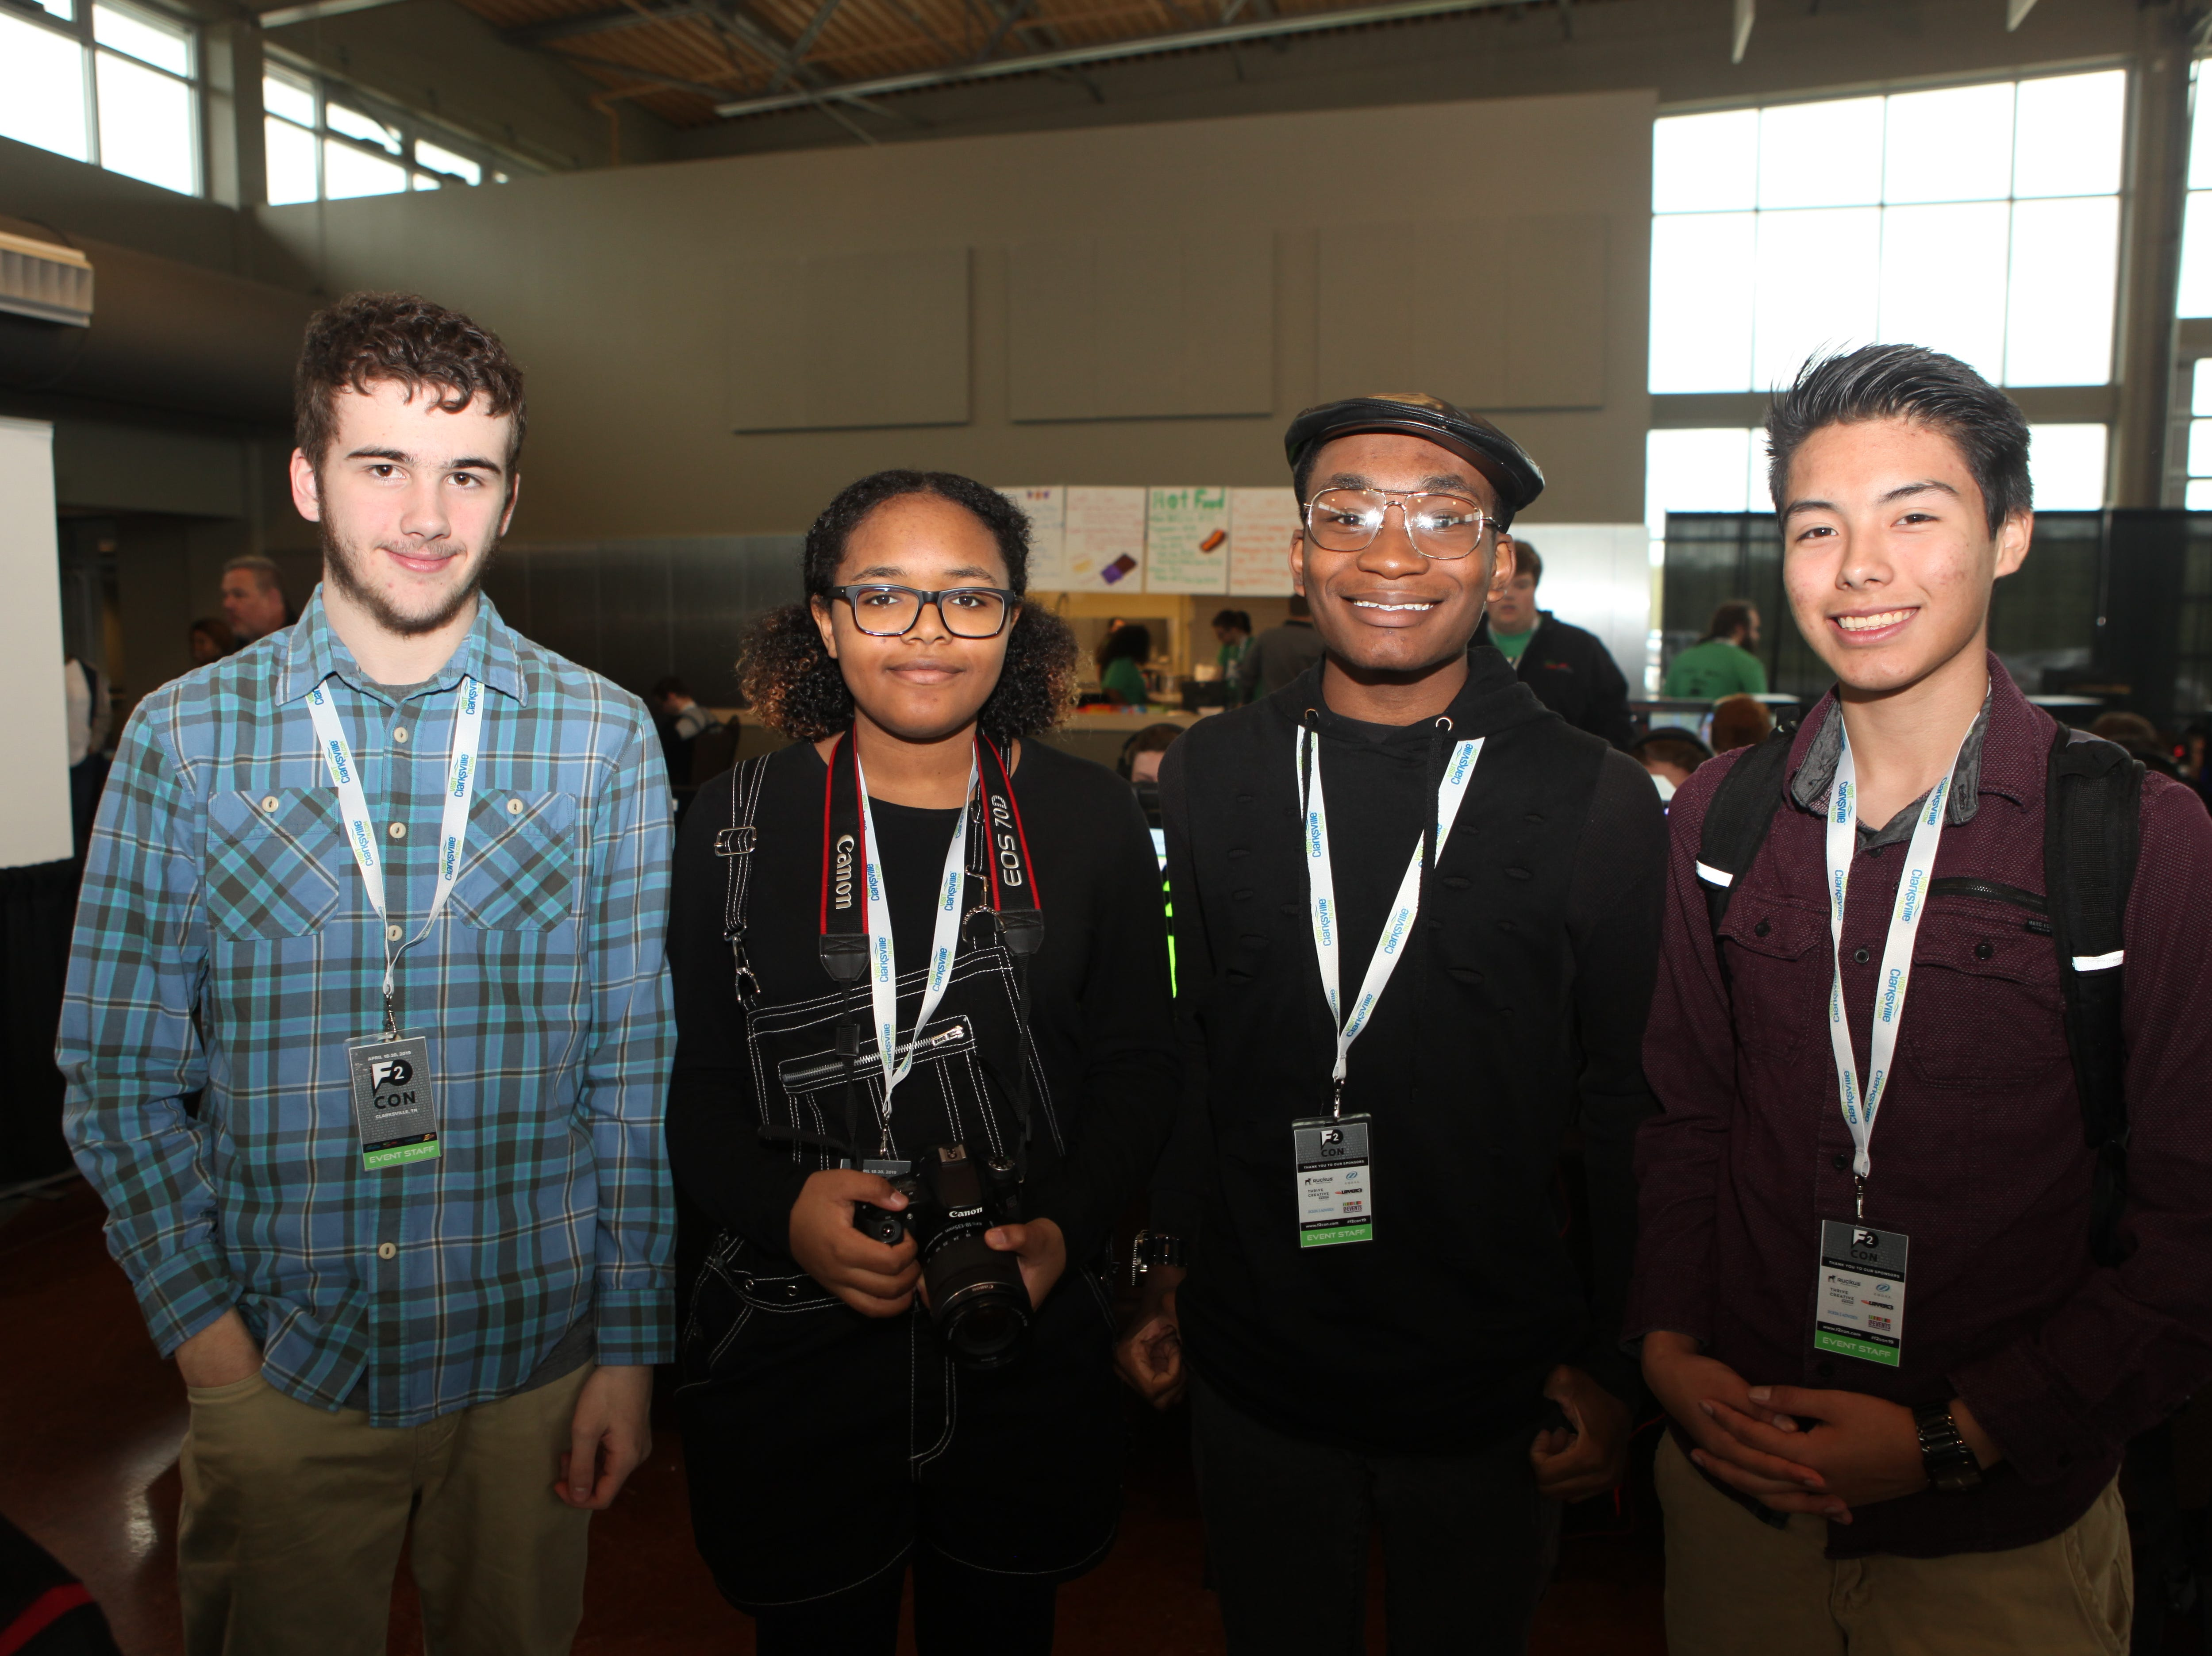 Alex Humphrey, Jordan Henry, Donovan Barker and Micah Olivis from West Creek High School at the second annual F2 Con Gaming Tournament on Saturday, April 20, 2019.